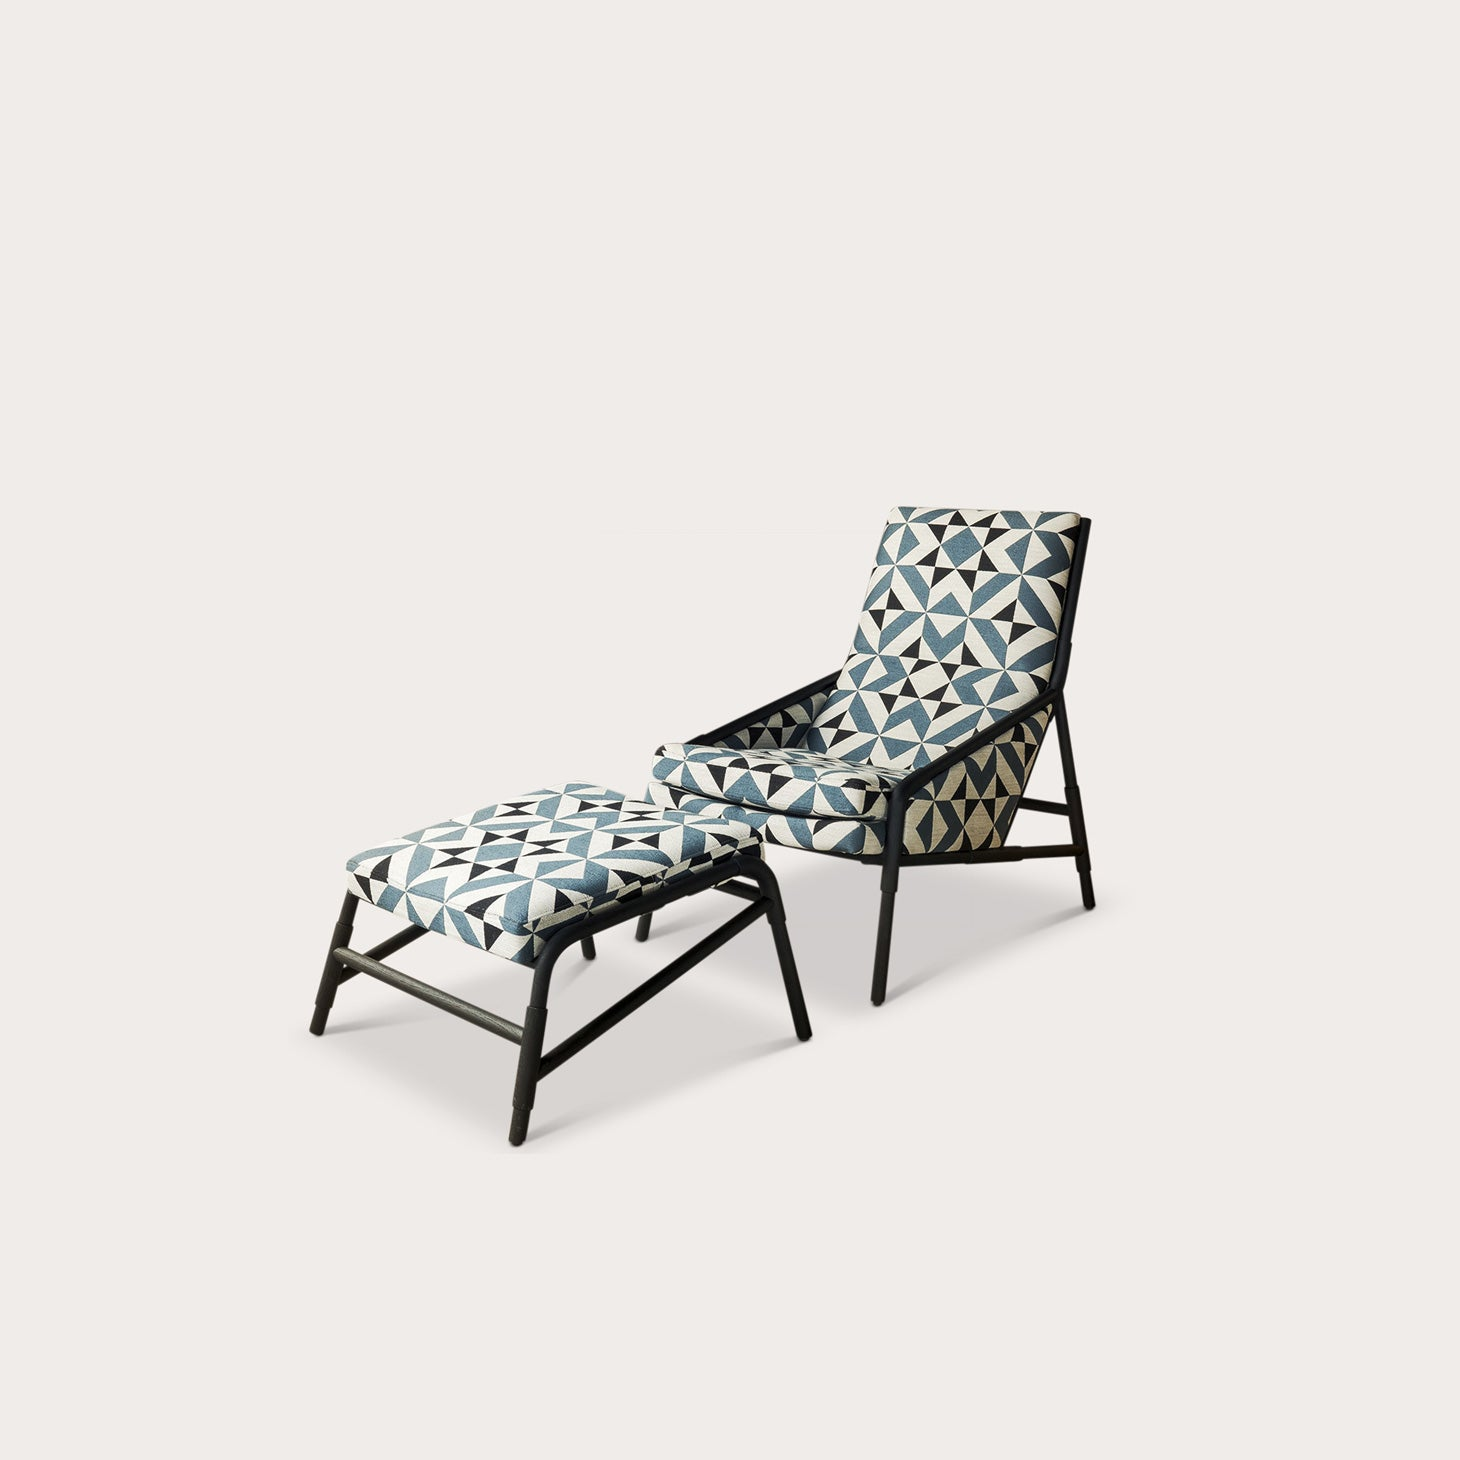 Bilbao Lounge Chair Seating Bruno Moinard Designer Furniture Sku: 773-240-10051